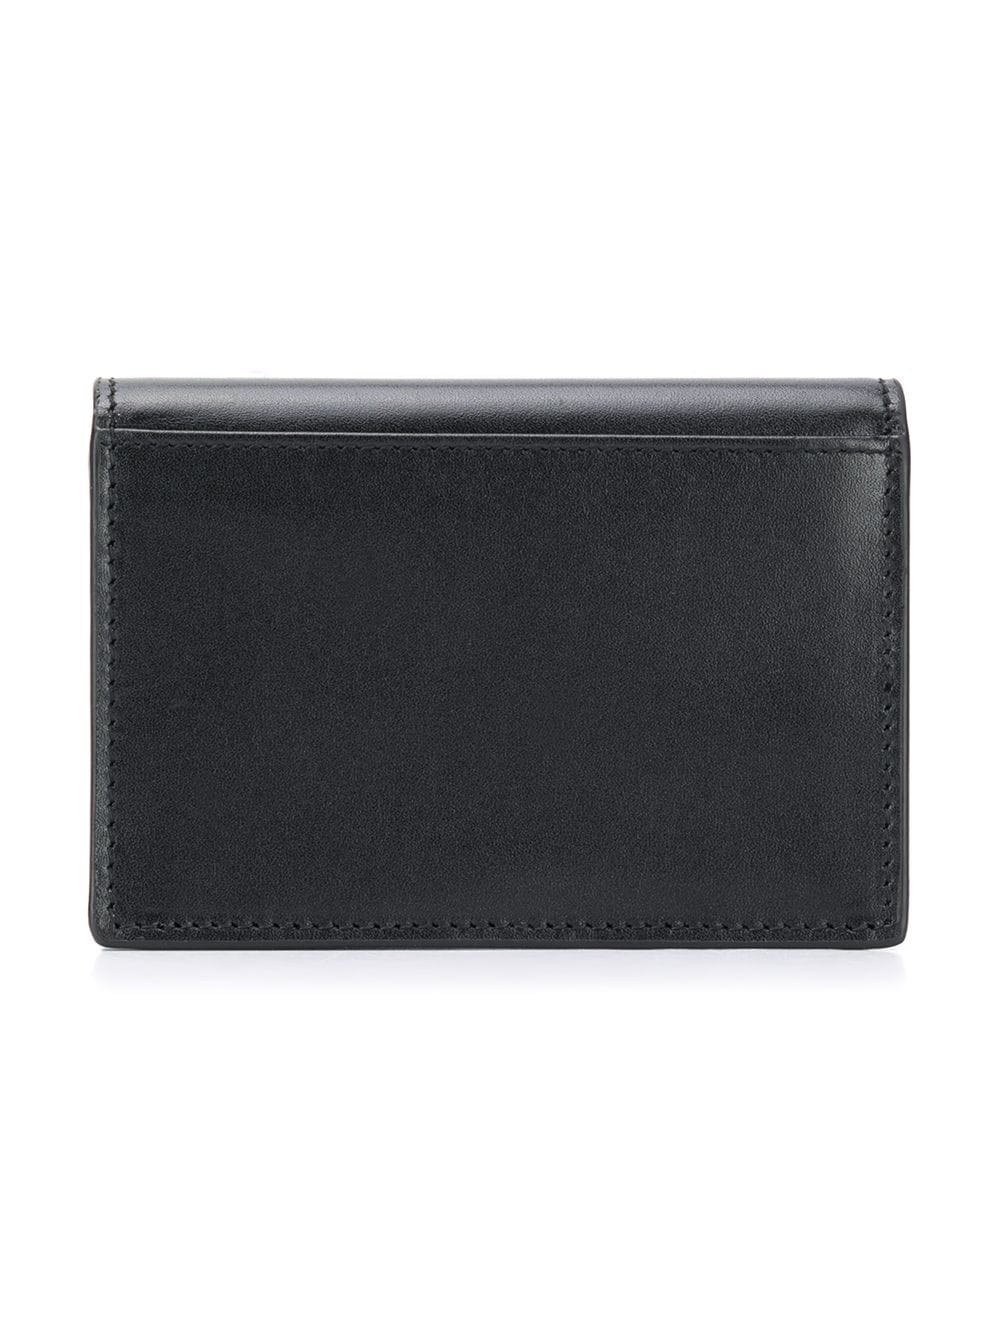 SAINT LAURENT CREDIT CARD HOLDER